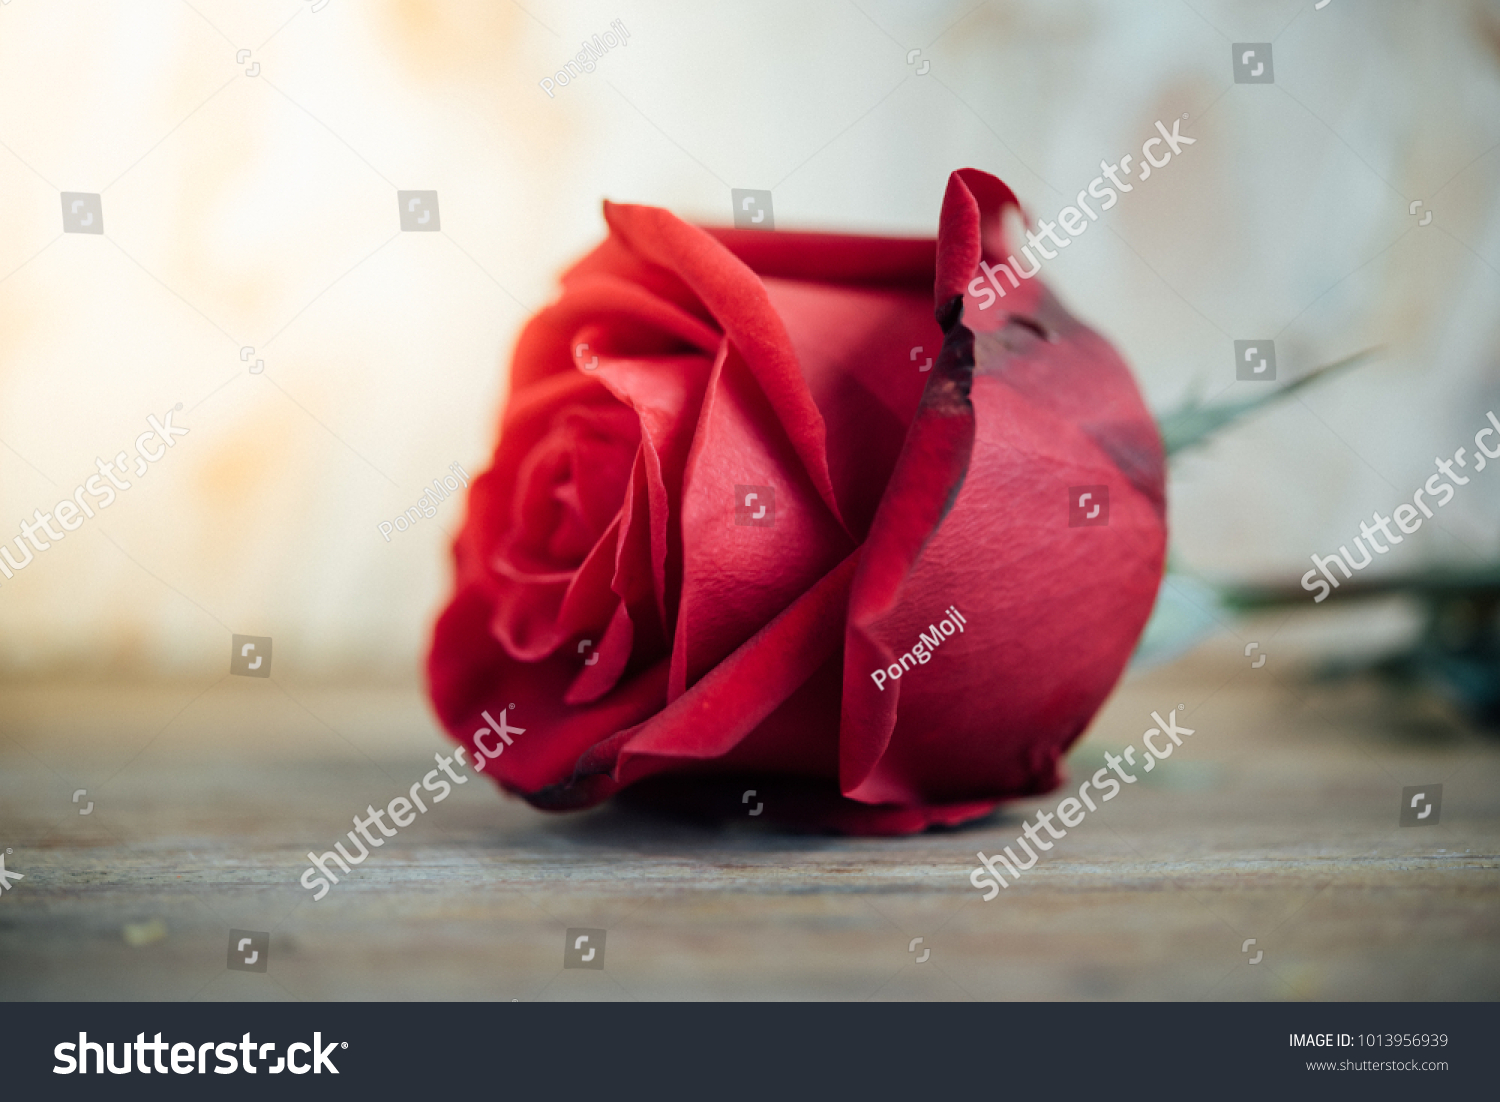 Red rose flower nature beautiful flowers stock photo download now red rose flower nature beautiful flowers from the garden for valentines on wooden floor with copy izmirmasajfo